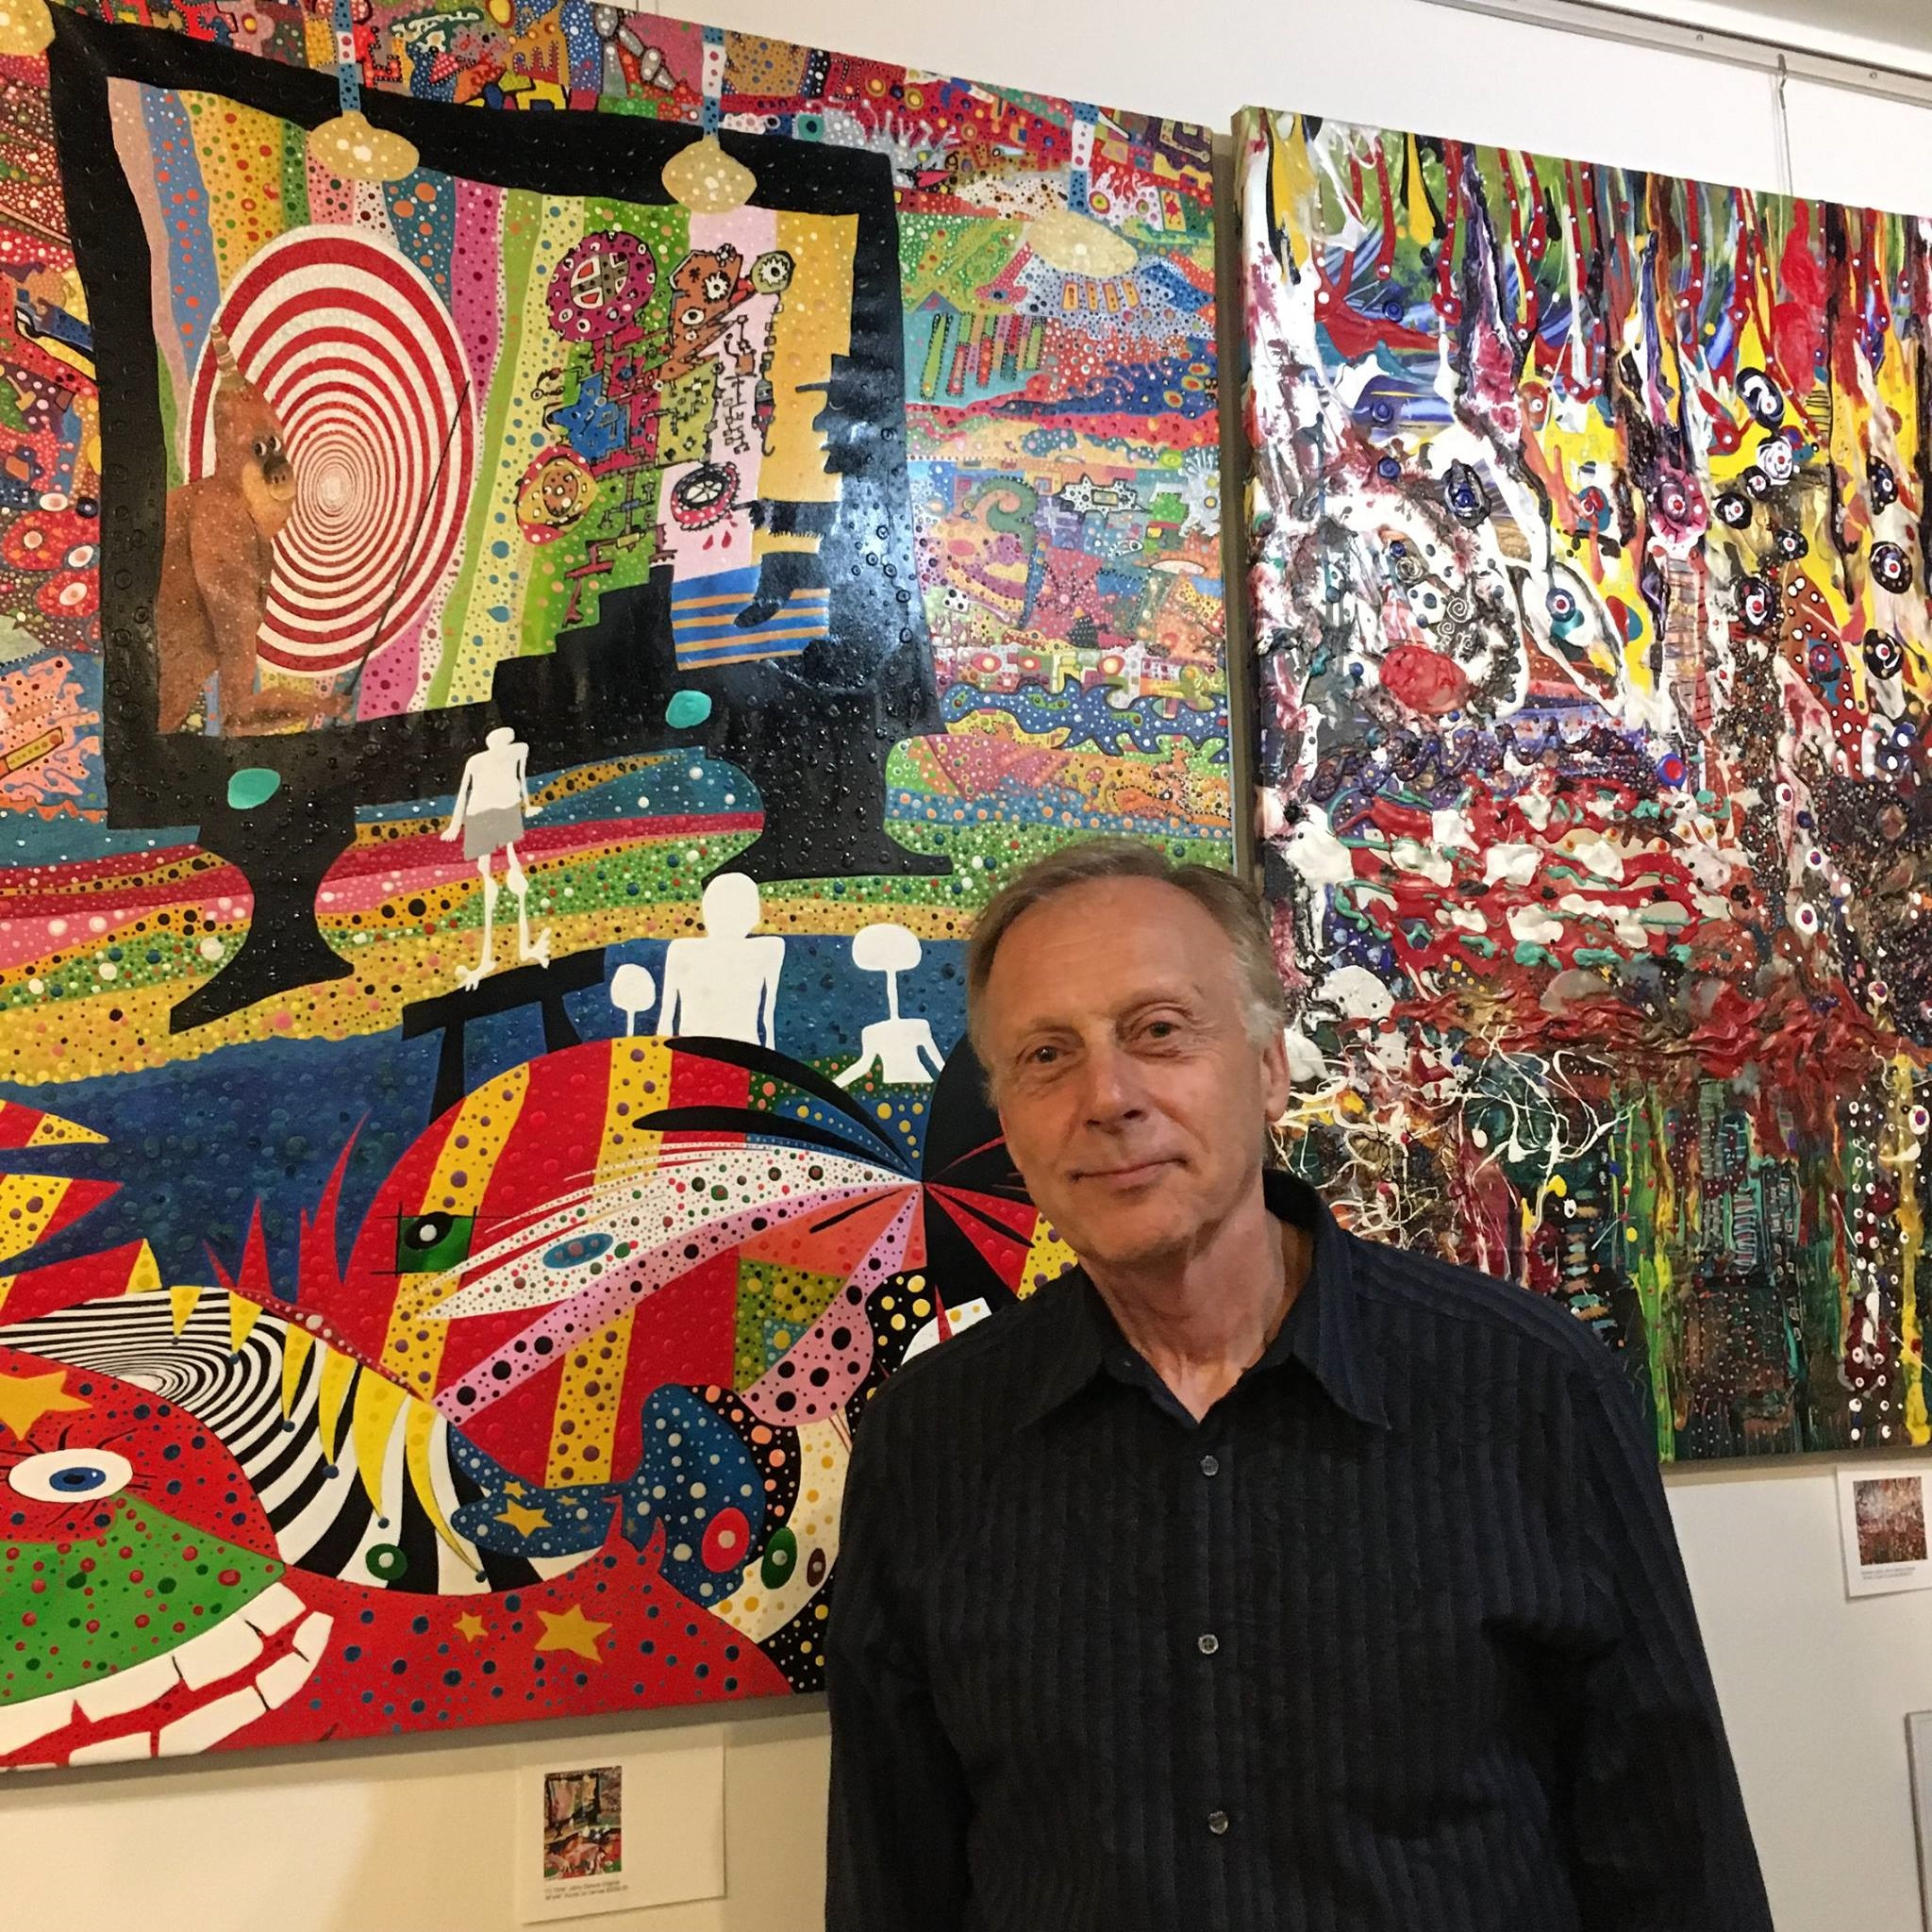 Johny Deluna in front of his art